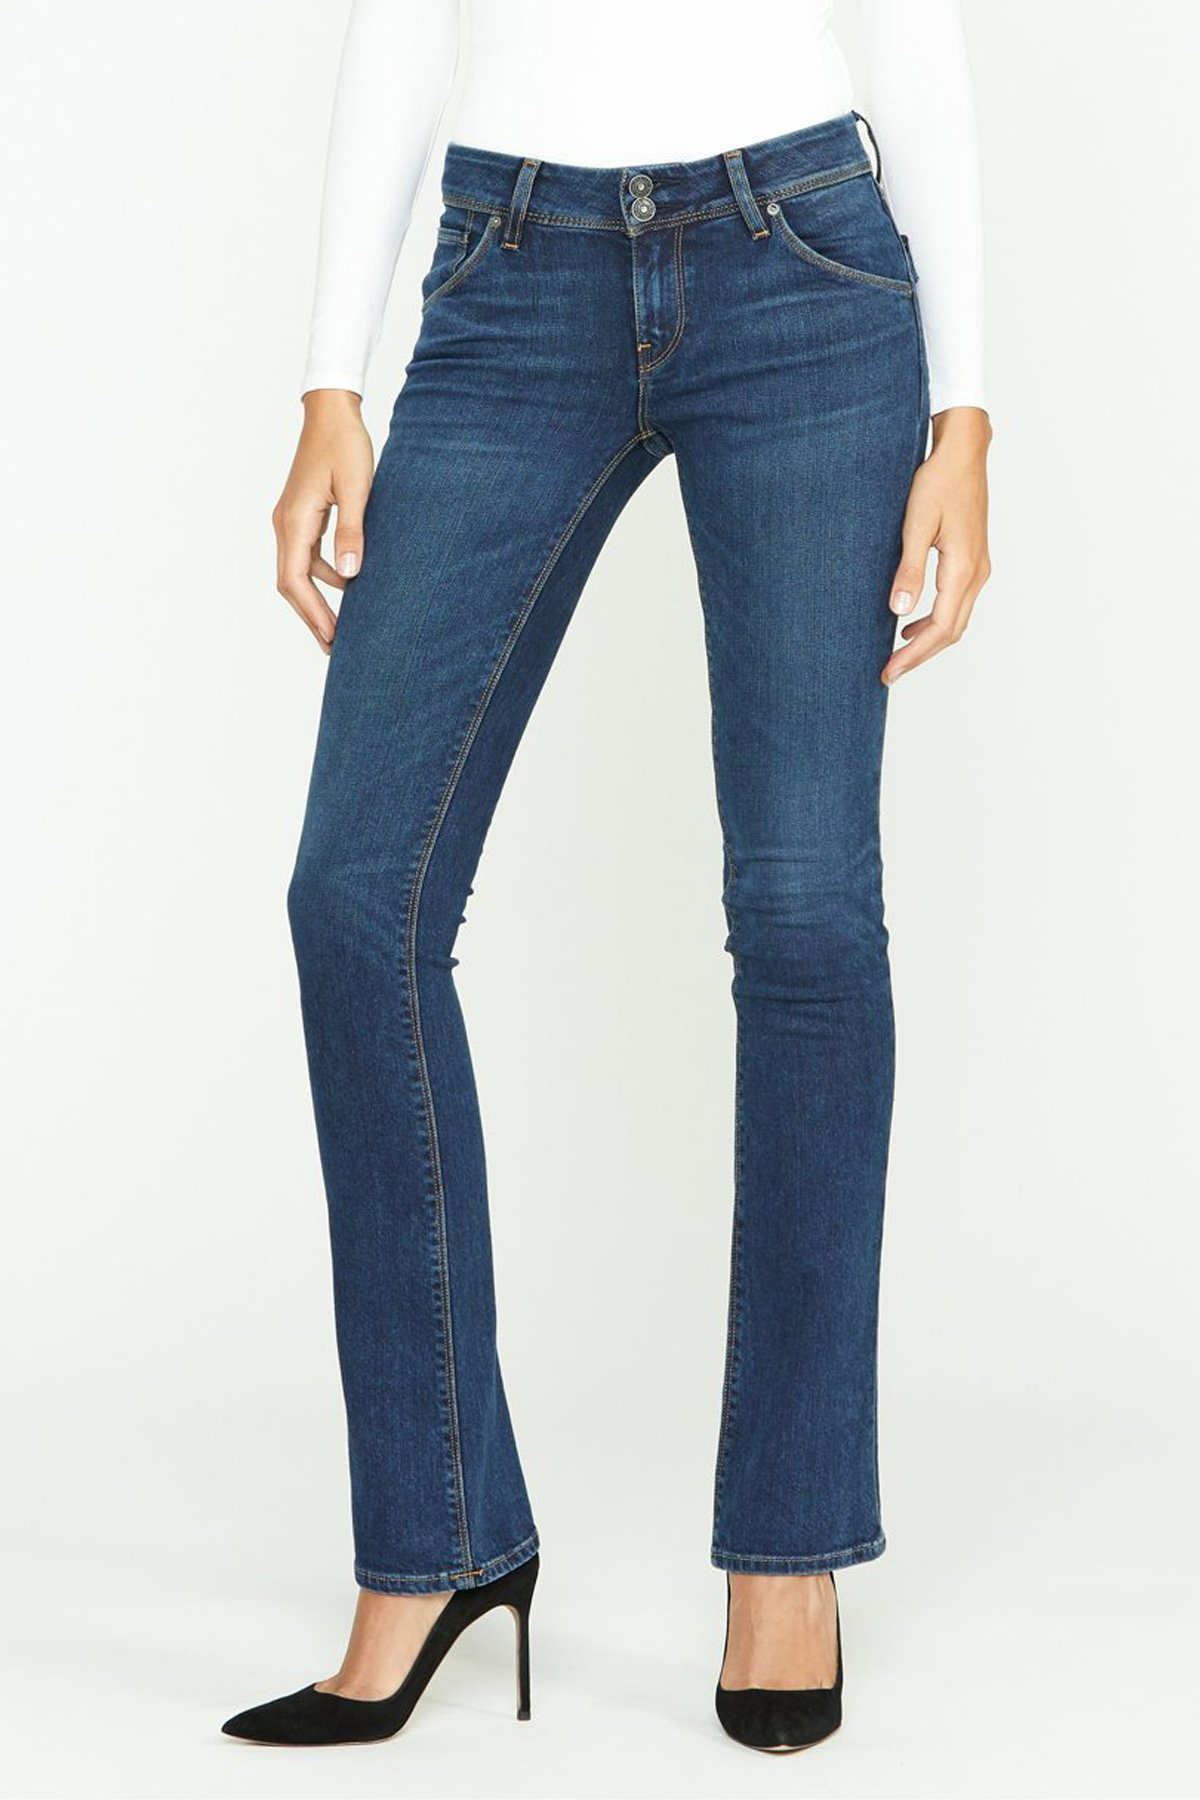 Hudson Jeans: Up to 70% Off Sale Styles